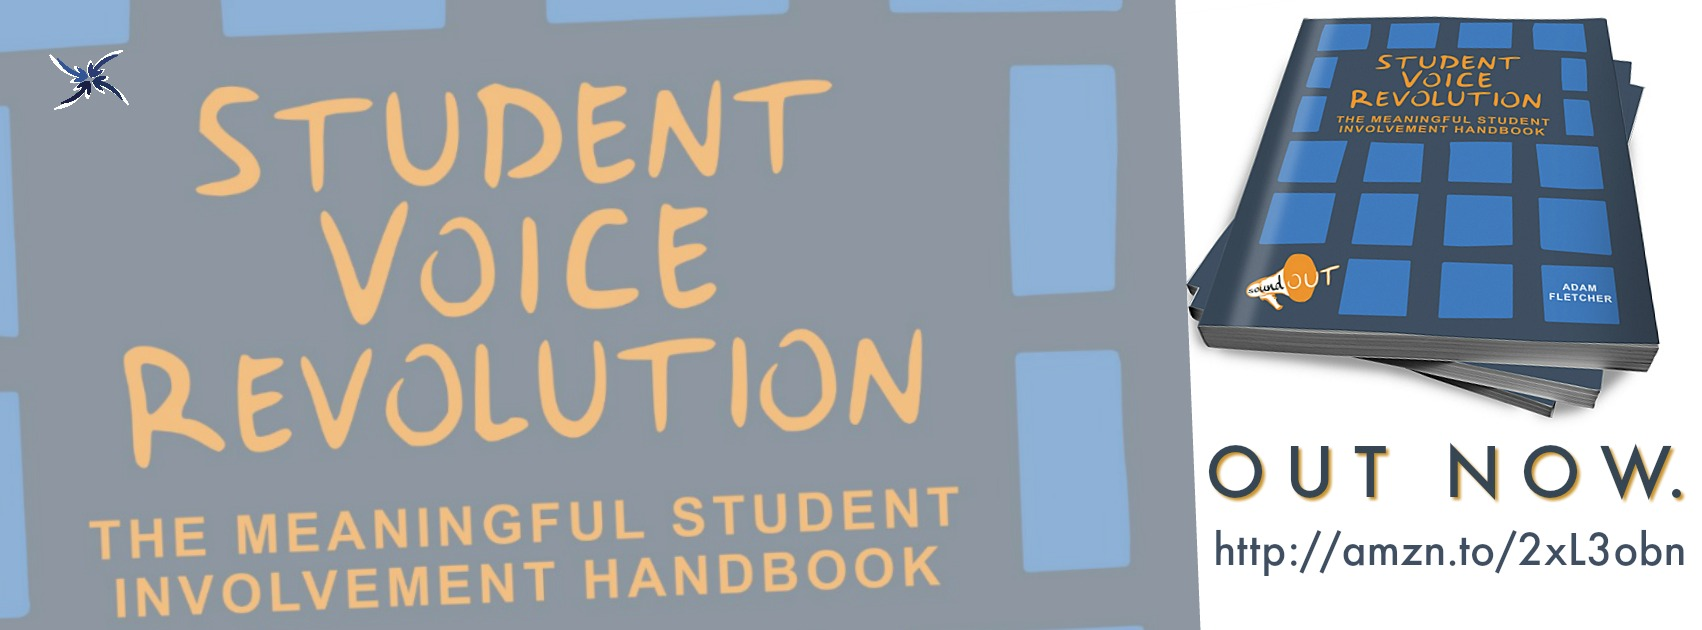 Banner for Student Voice Revolution by Adam Fletcher